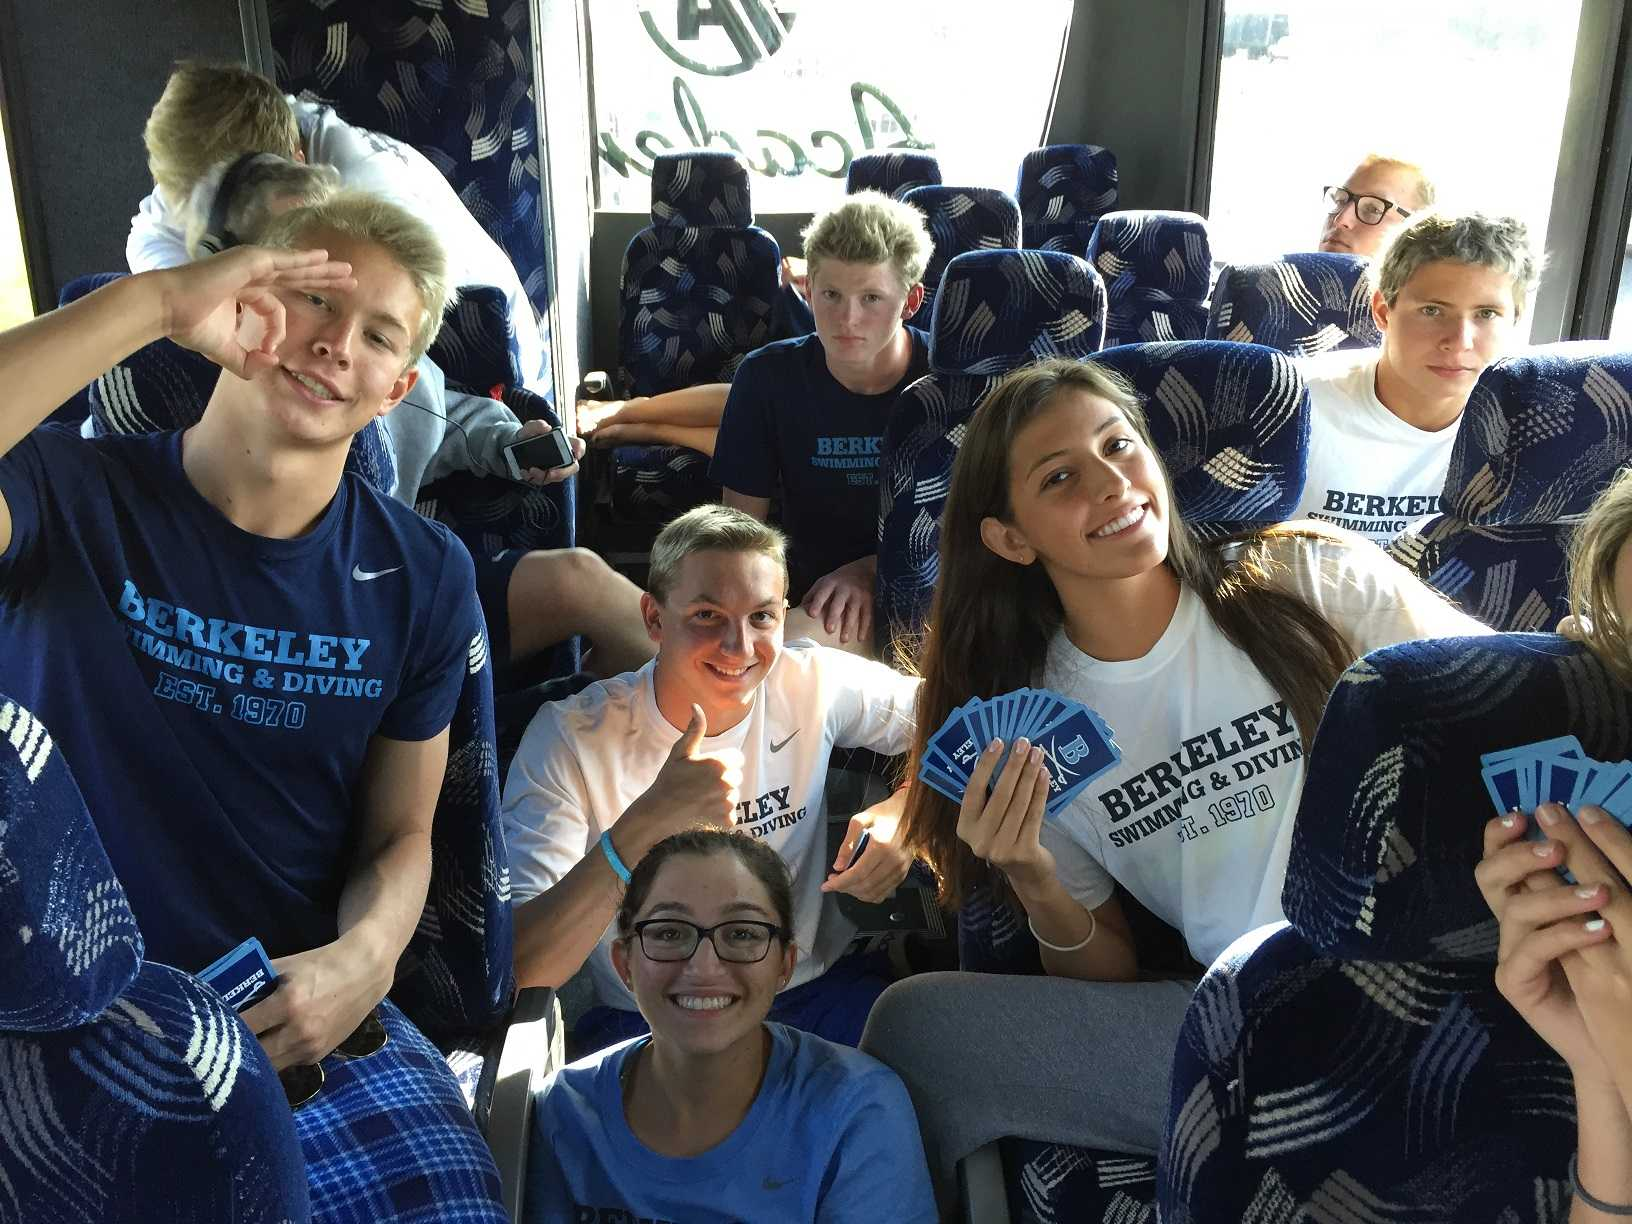 WHEELS ON THE BUS: One of the wheels on the bus back from regionals caught a flat, leaving the Bucs stranded on the side of the road. Luckily, the swimmers had cards to entertain them while they waited. Pictured above is Robert Cecil '17, Arielle Bader '17, Nathan Stovern '17, Scott Showalter '21, Sabrina Vergara '19, Daryl Pickerell '17 and Ryaan Hatoum '19 (from left).